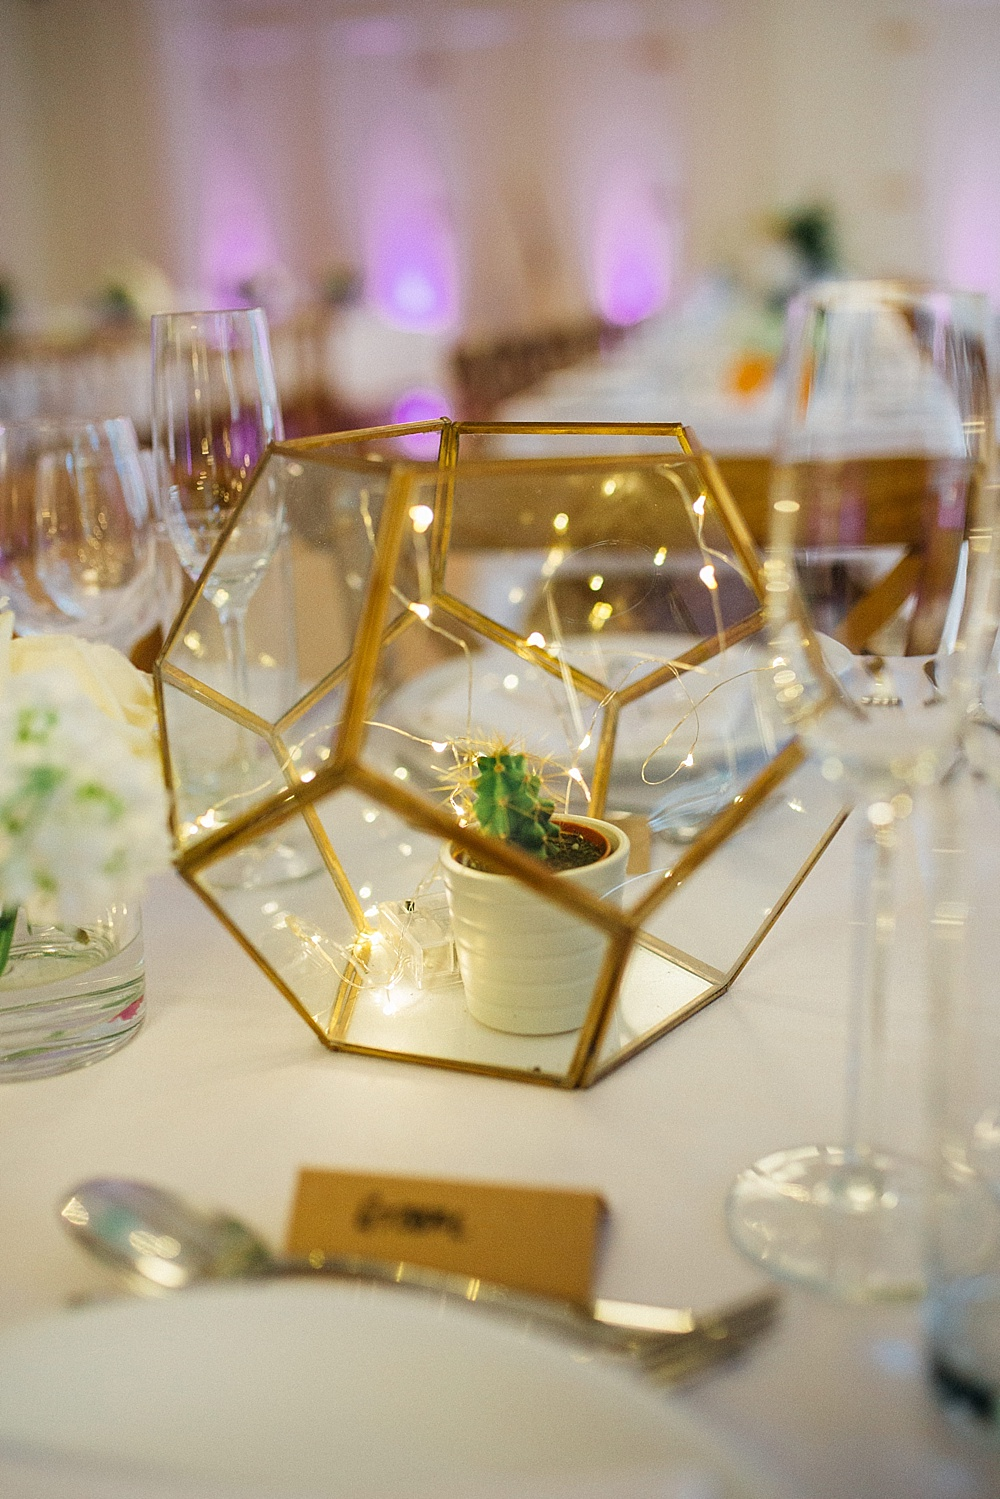 Terrarium centre piece at hackney town hall wedding